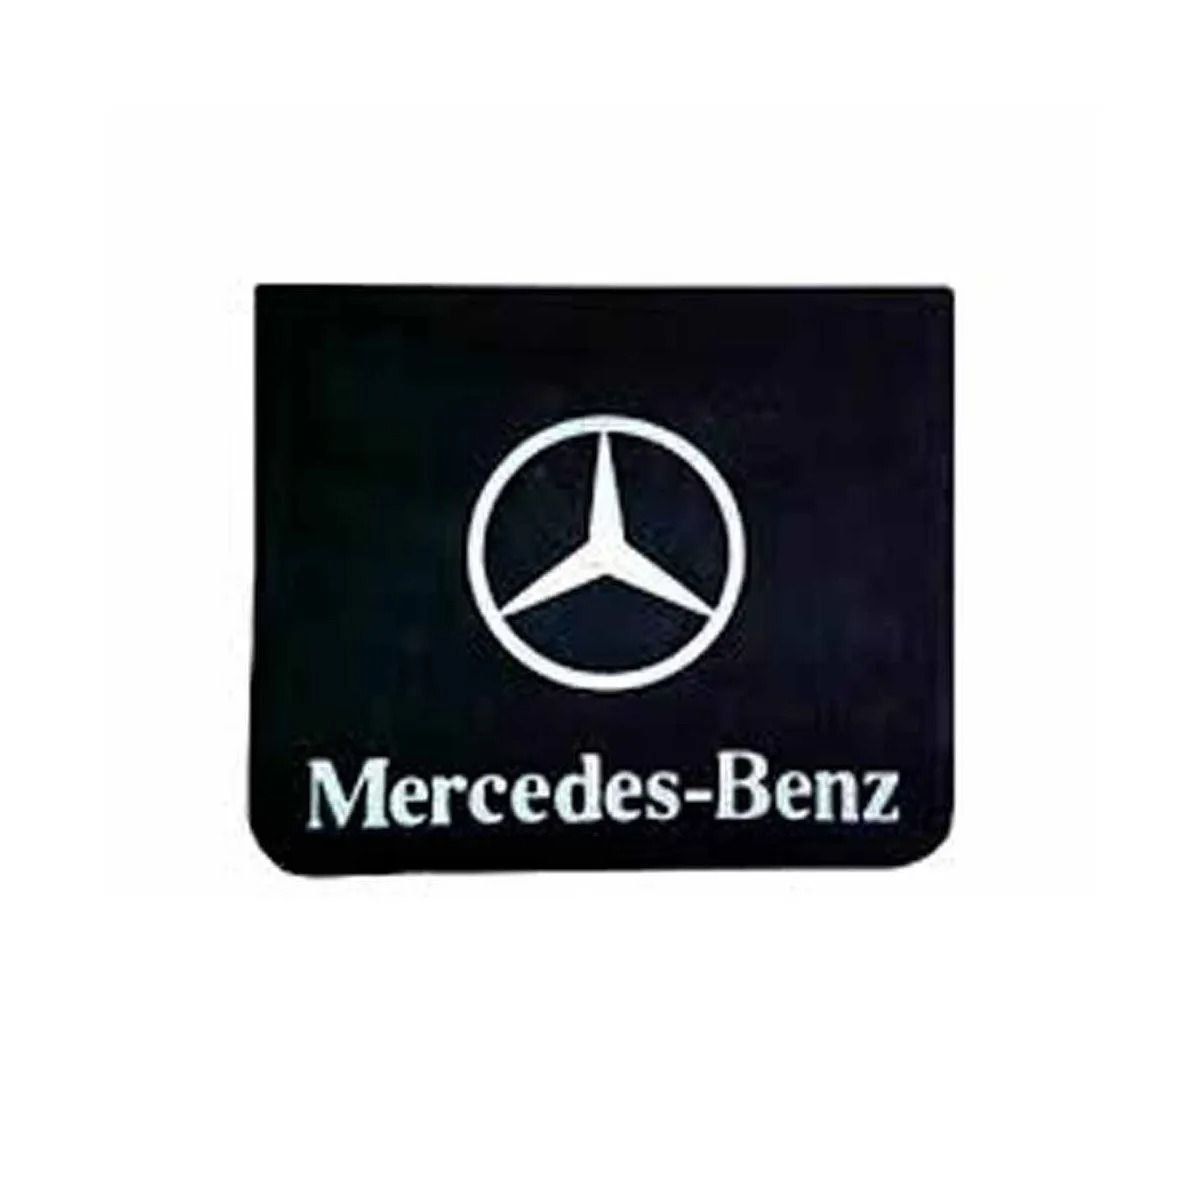 Apara Barro Borracha para Mercedes Benz (57,5x62)